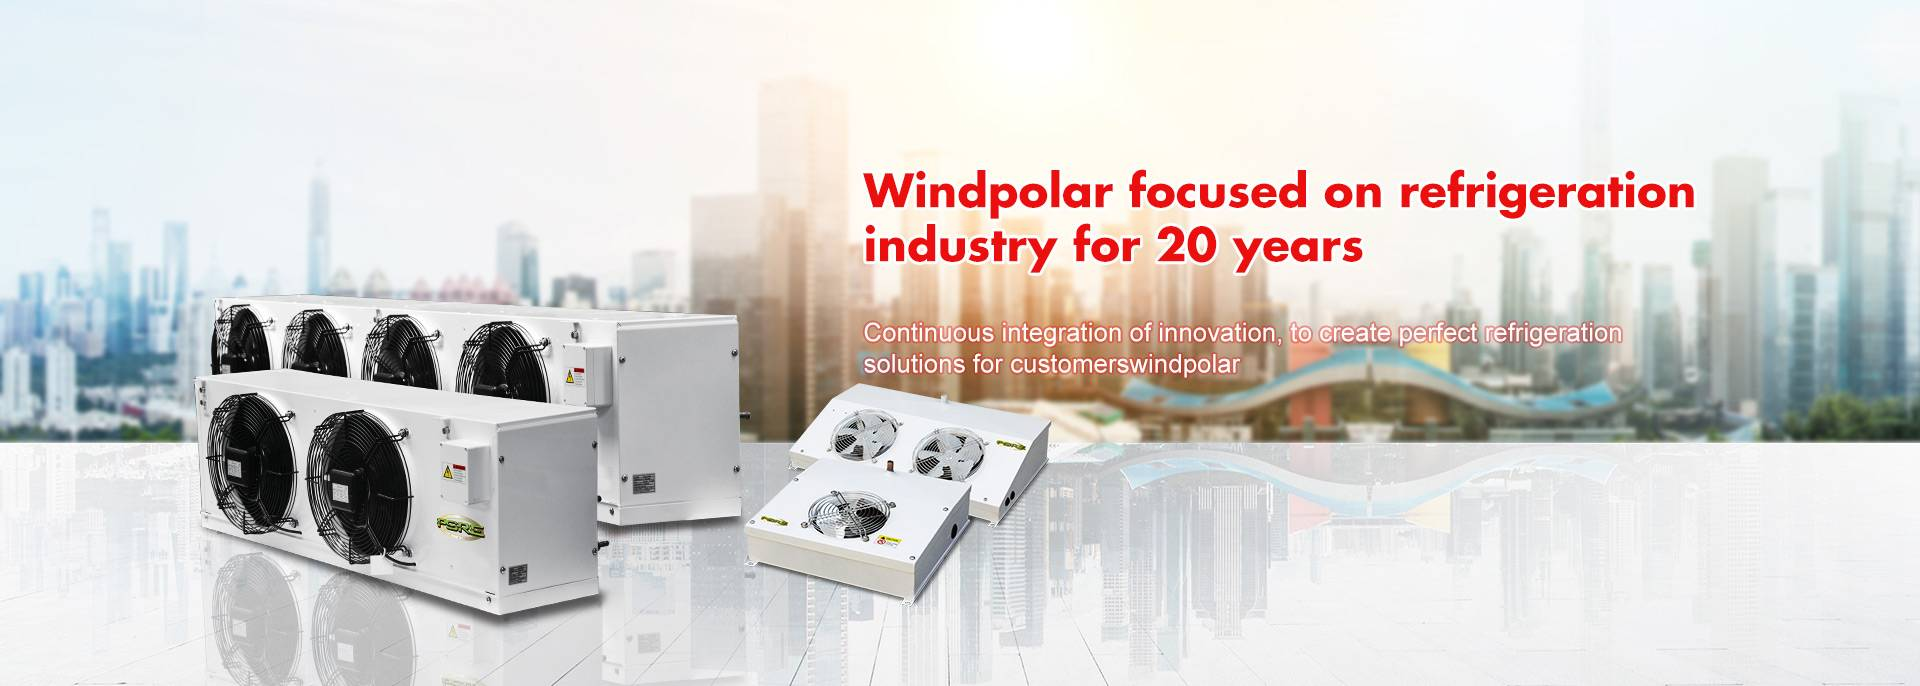 Windpolar focused on refrigeration  industry for 20 years